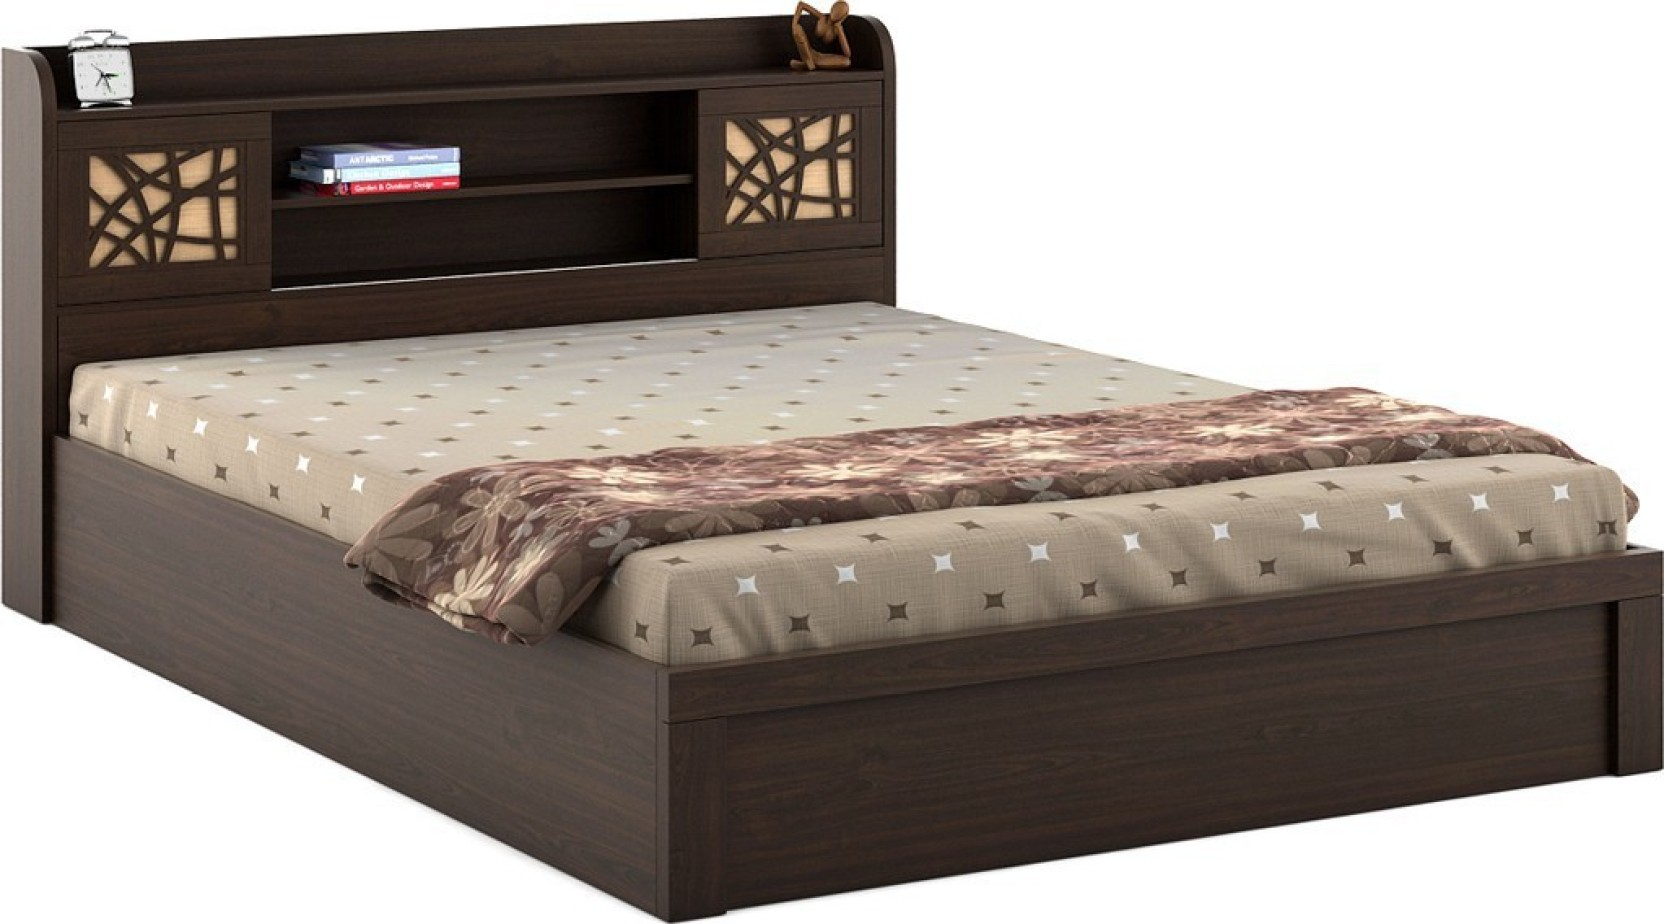 Spacewood mayflower engineered wood king bed with storage for Buy king bed online